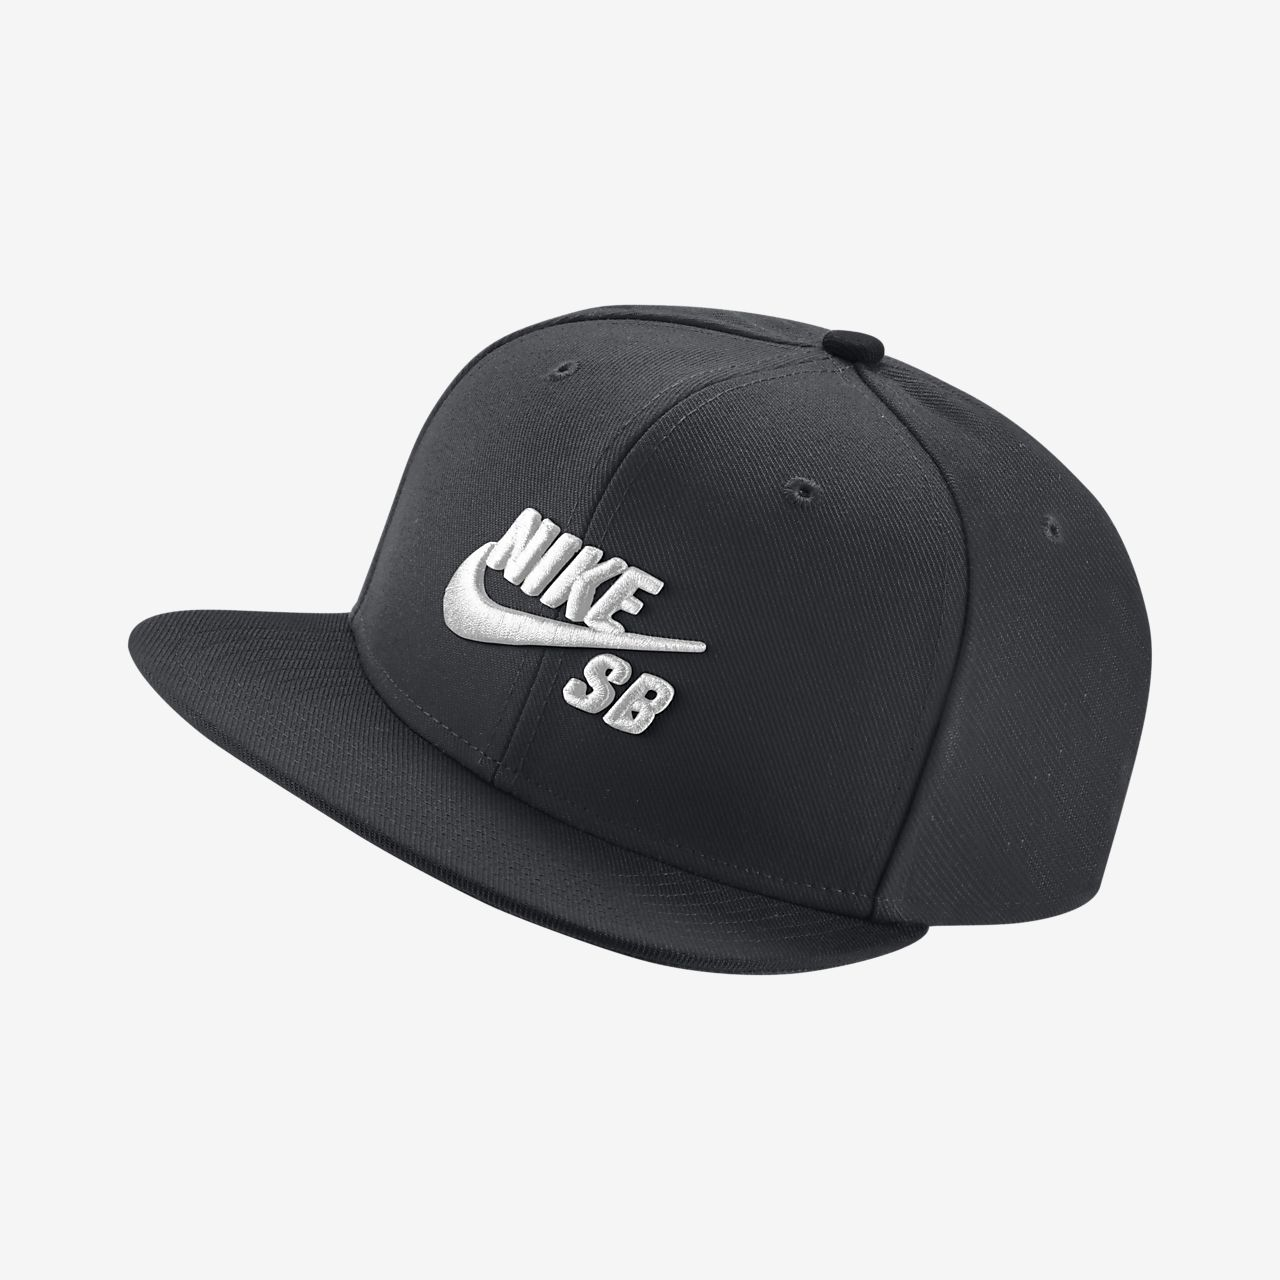 249769c78b2 Nike SB Icon Adjustable Hat. Nike.com